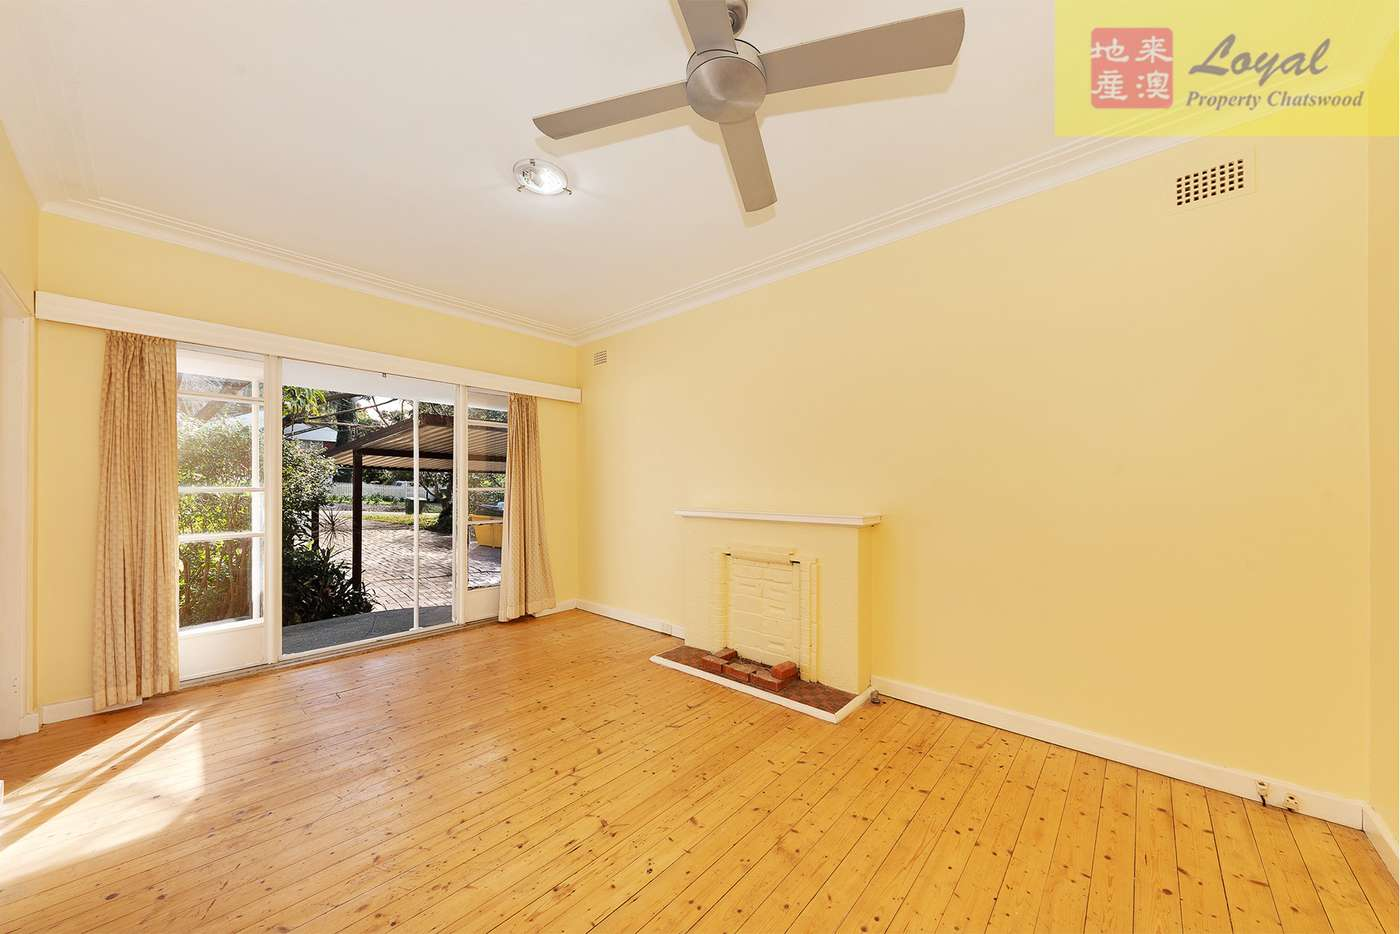 Fifth view of Homely house listing, 8 Cadow Street, Pymble NSW 2073